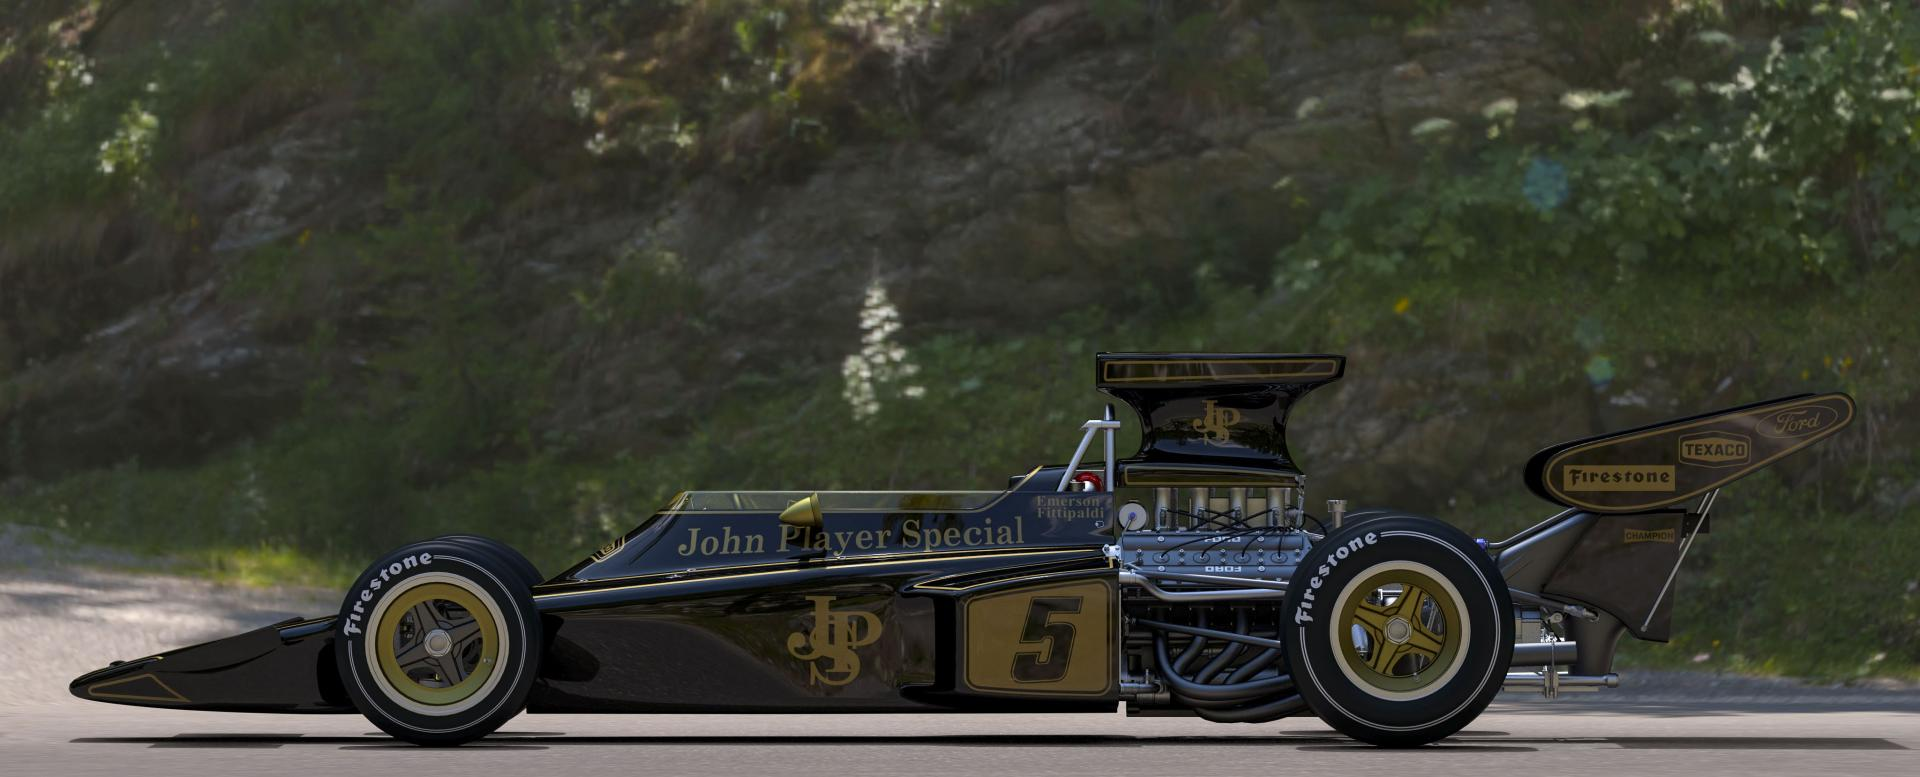 Lotus72D_Side-as-Smart-Object-1.thumb.jpg.e9380f1d340ef2611e661f4a116b6102.jpg